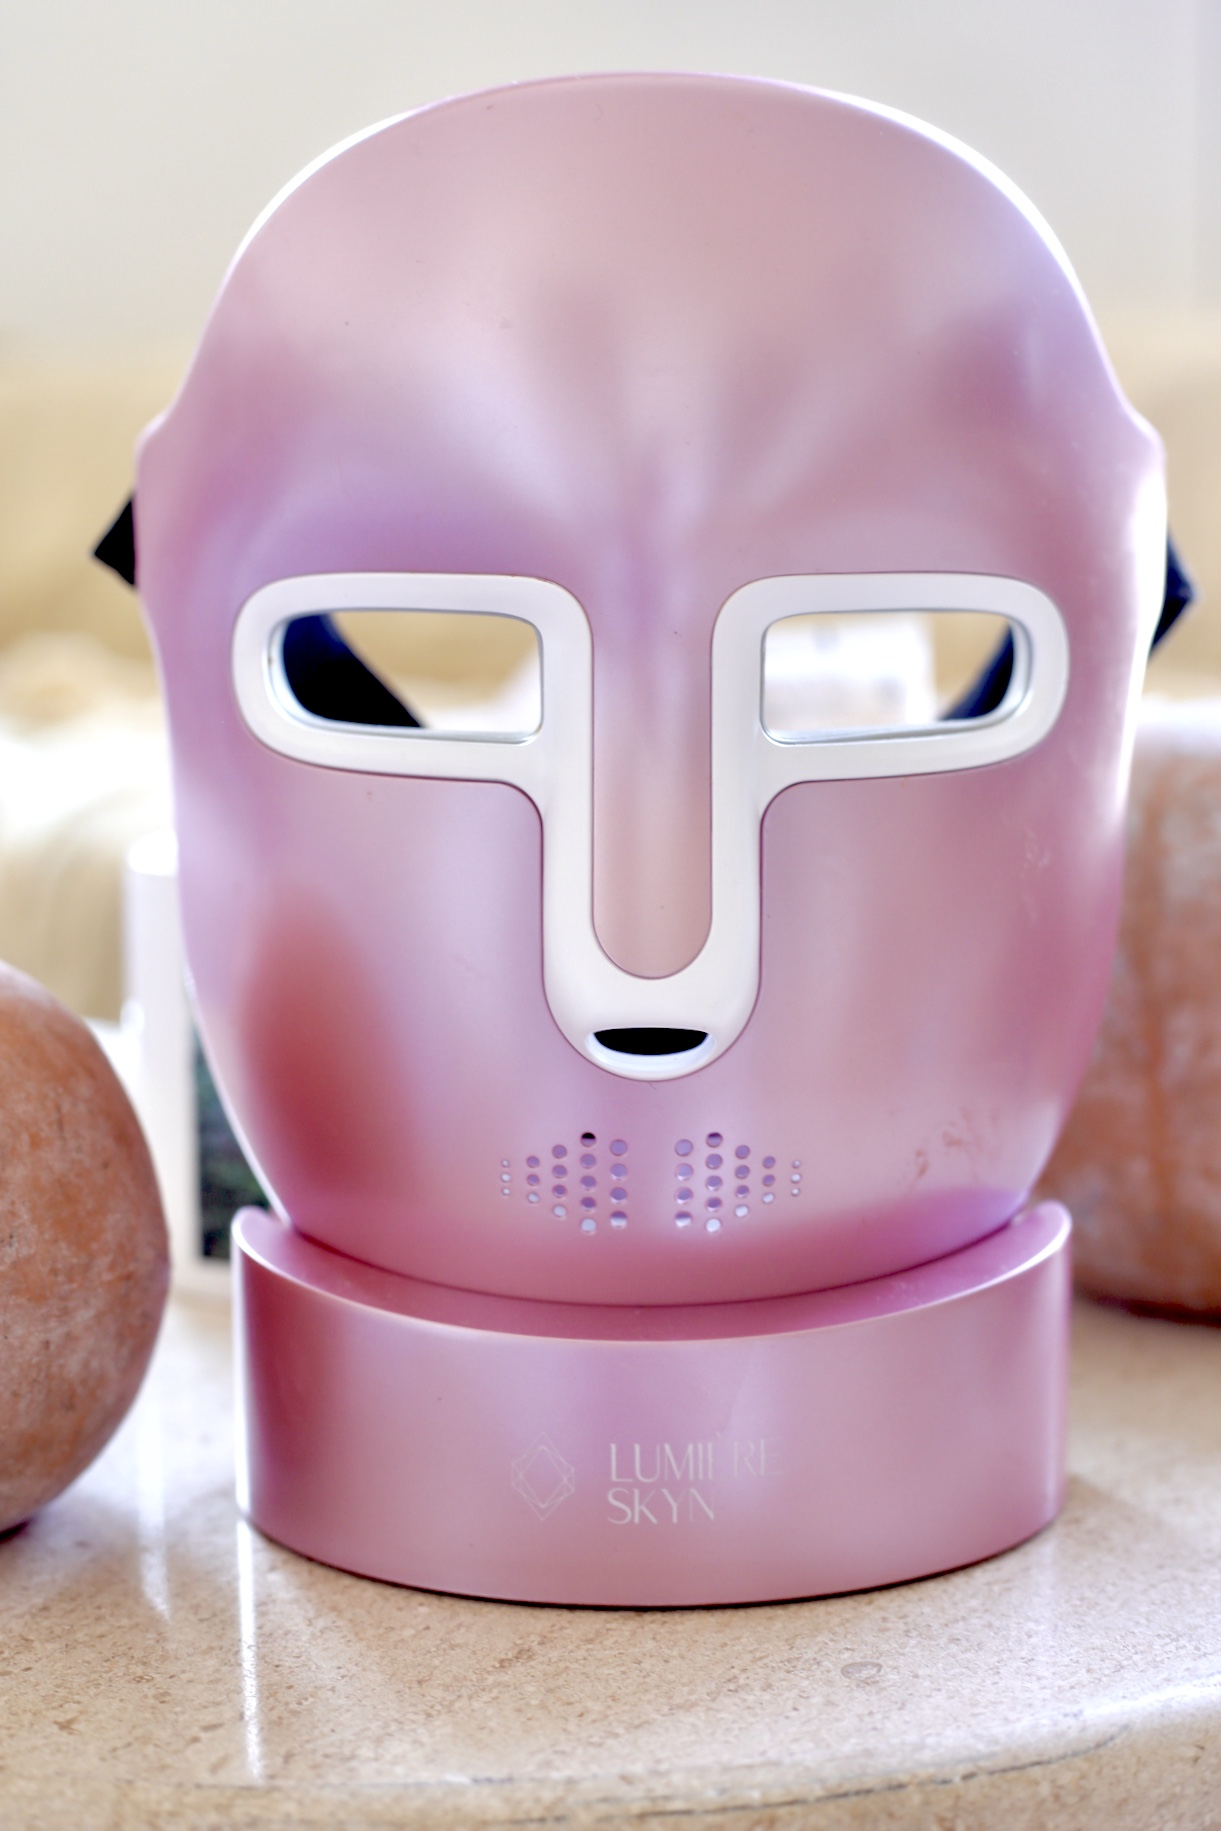 HyperGlo LED Face Mask Review